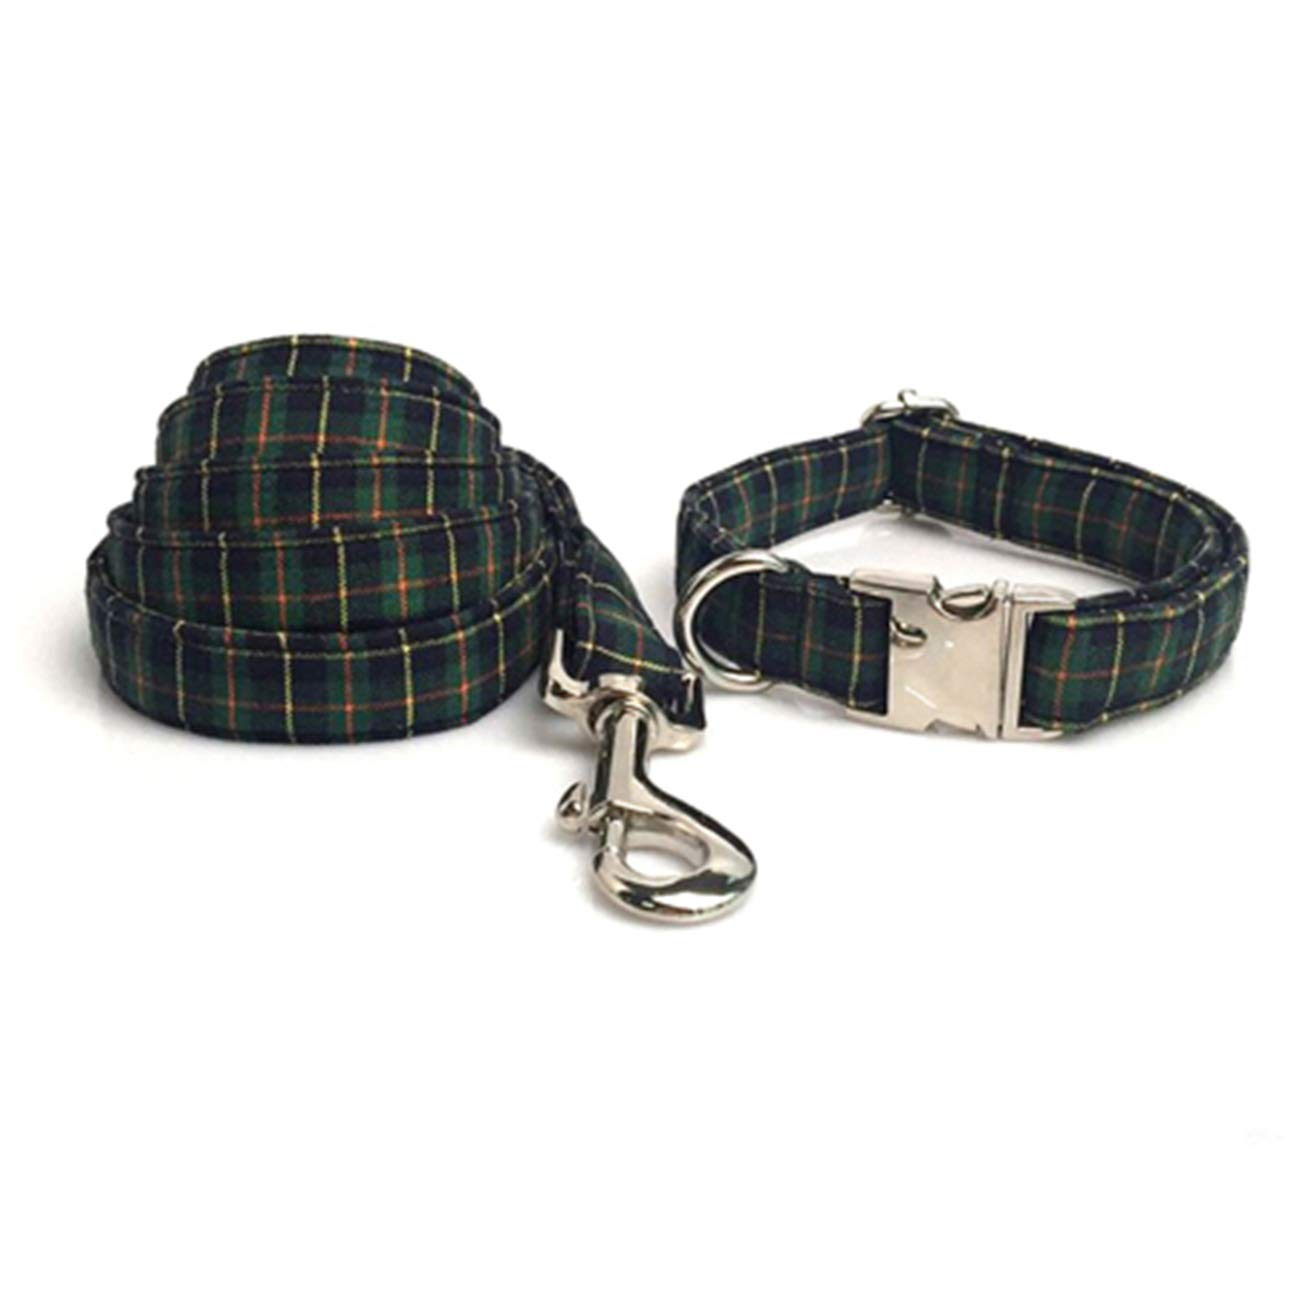 Collar and leash M collar and leash M Beatybag Christmas Green Plaid Dog Collar and Leash Set with Bow Tie Dog &Cat Necklace and Dog Leash Pet Accessaries Collar and Leash M